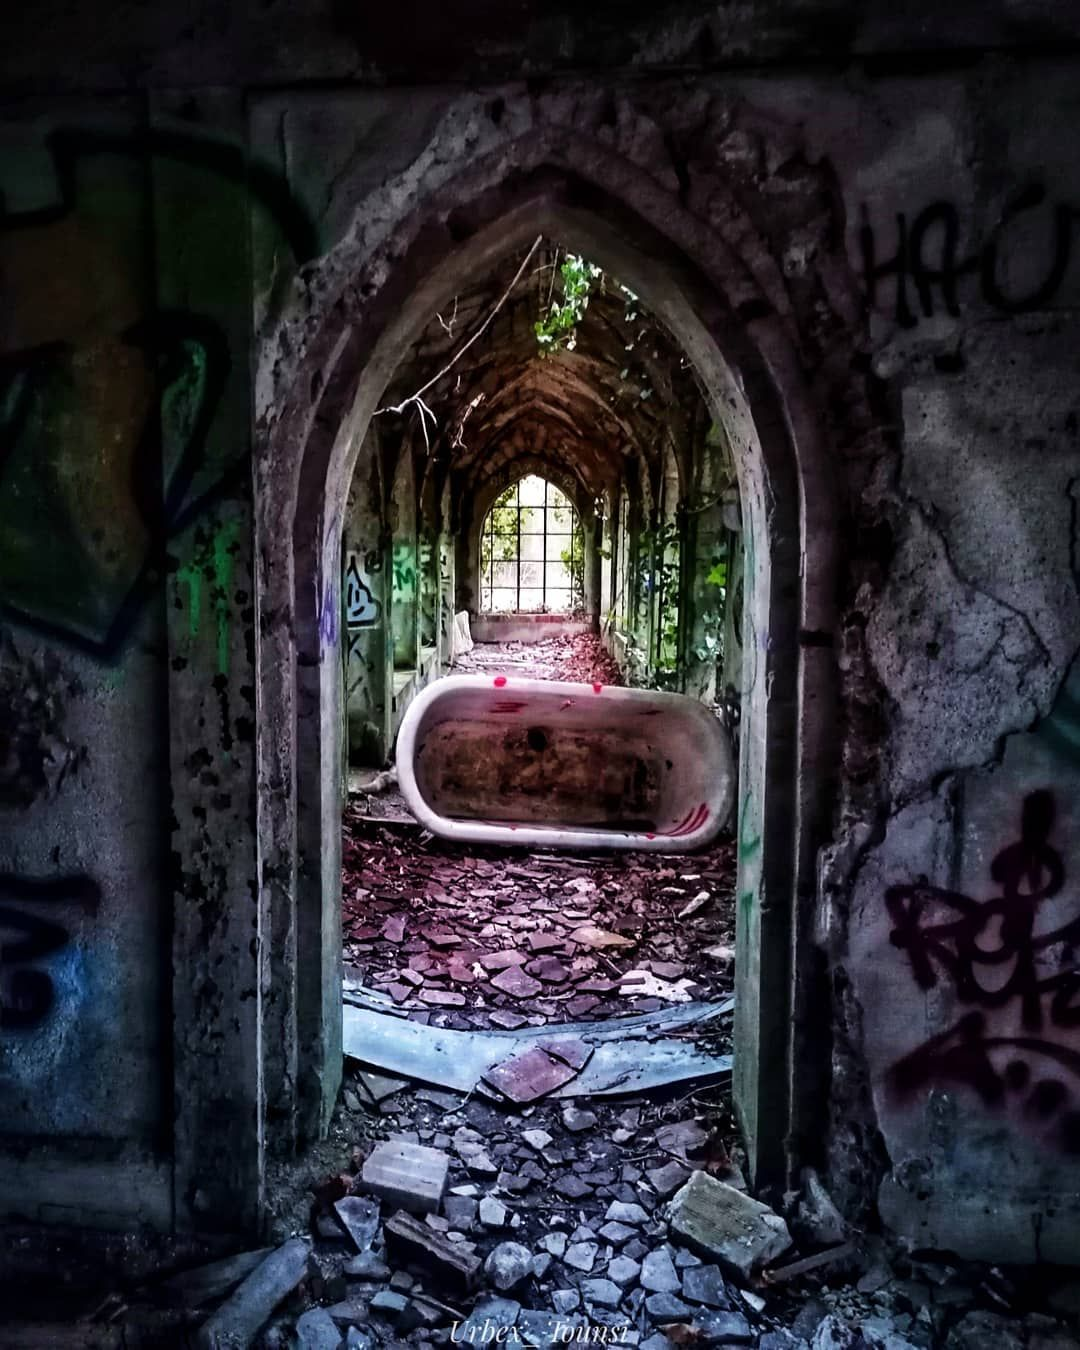 Pin On Abandoned Buildings & Urban Exploration